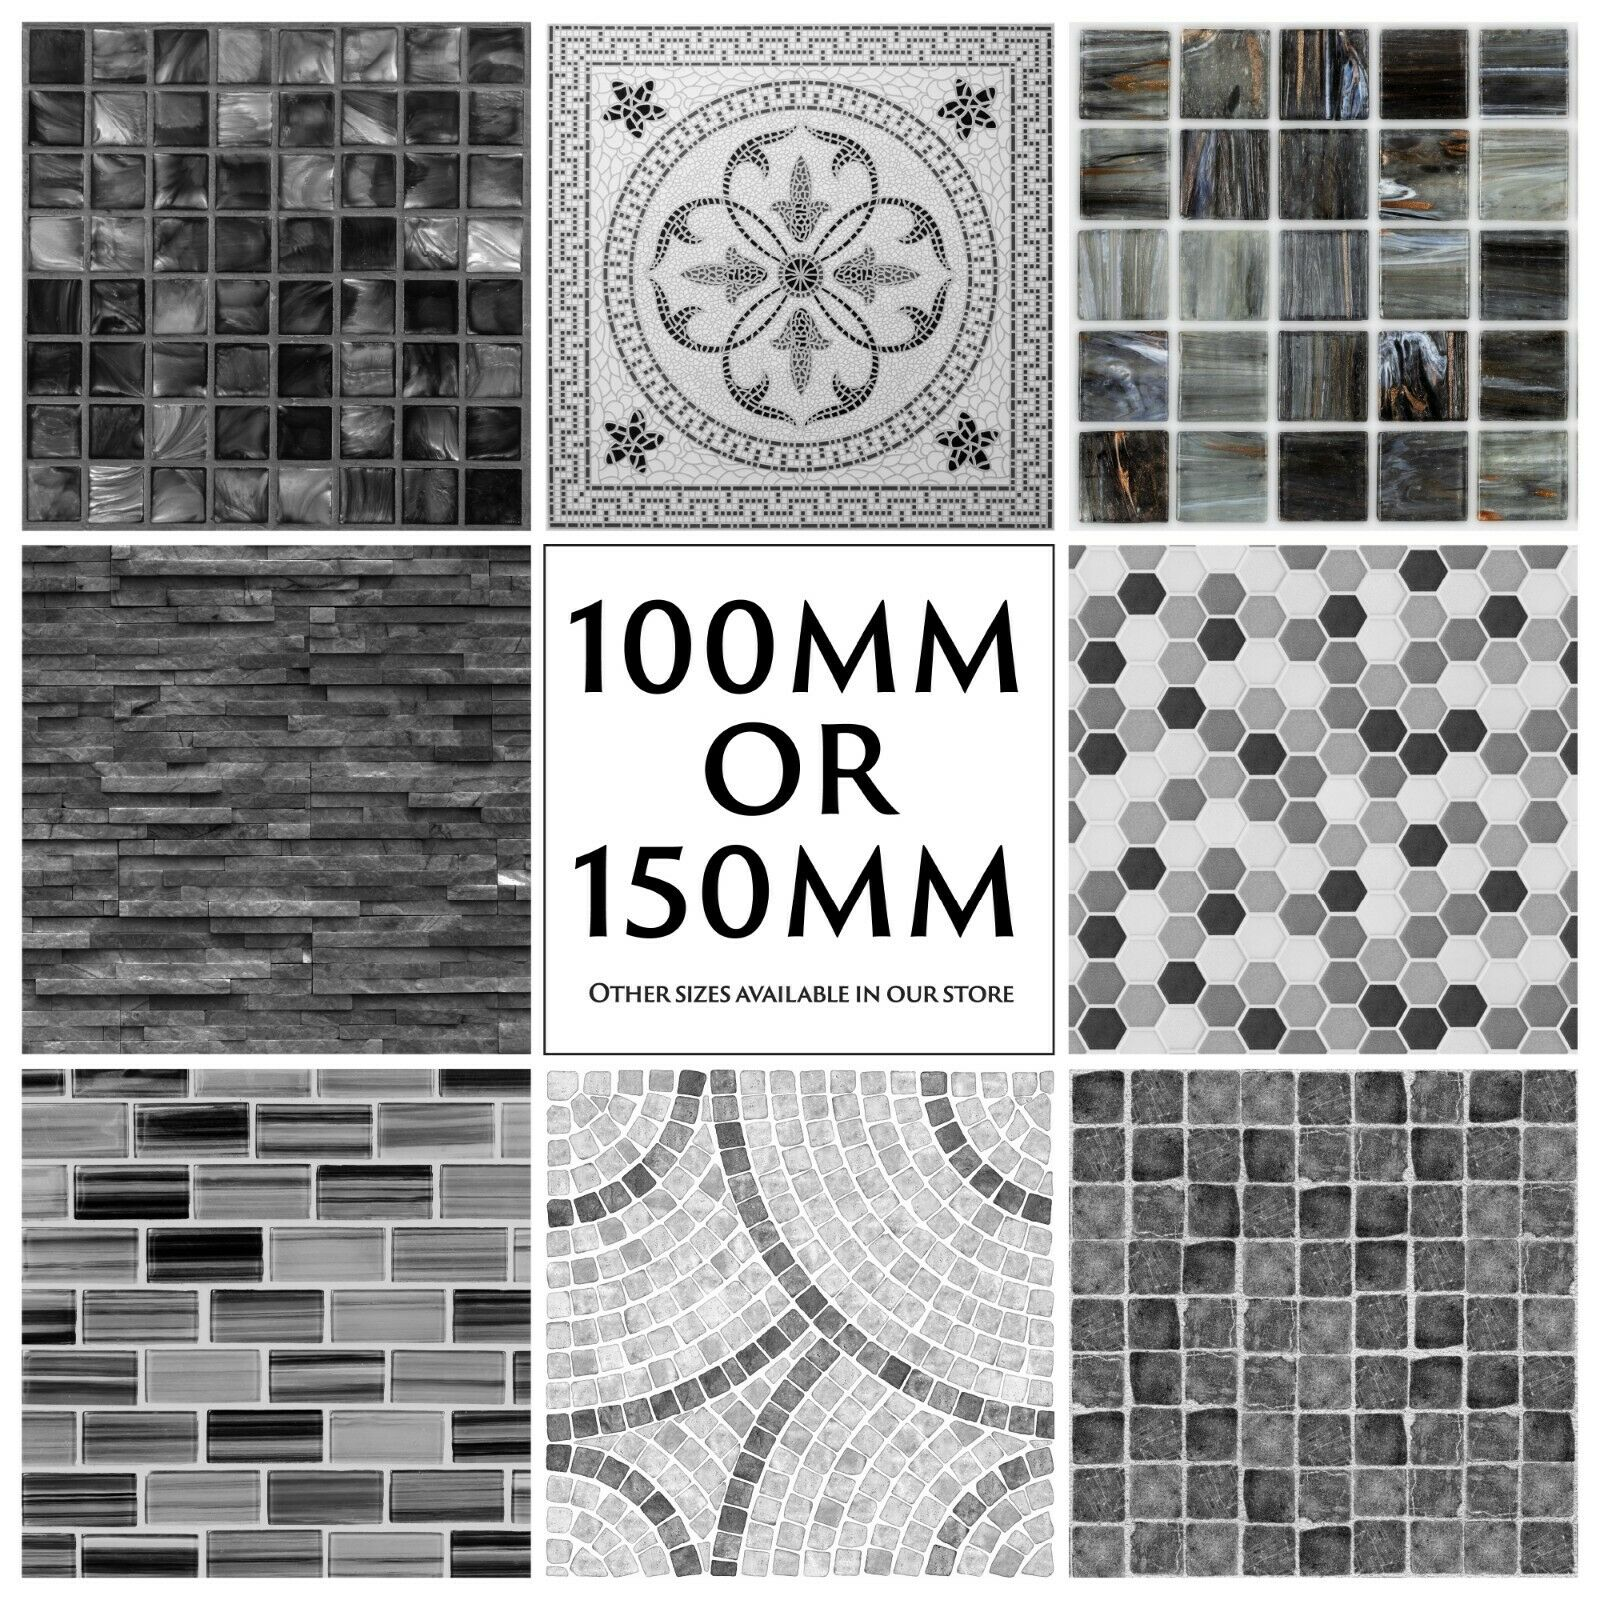 Mosaic Tile Stickers Kitchen Bathroom Black Grey Marble Effect - 150mm or 100mm